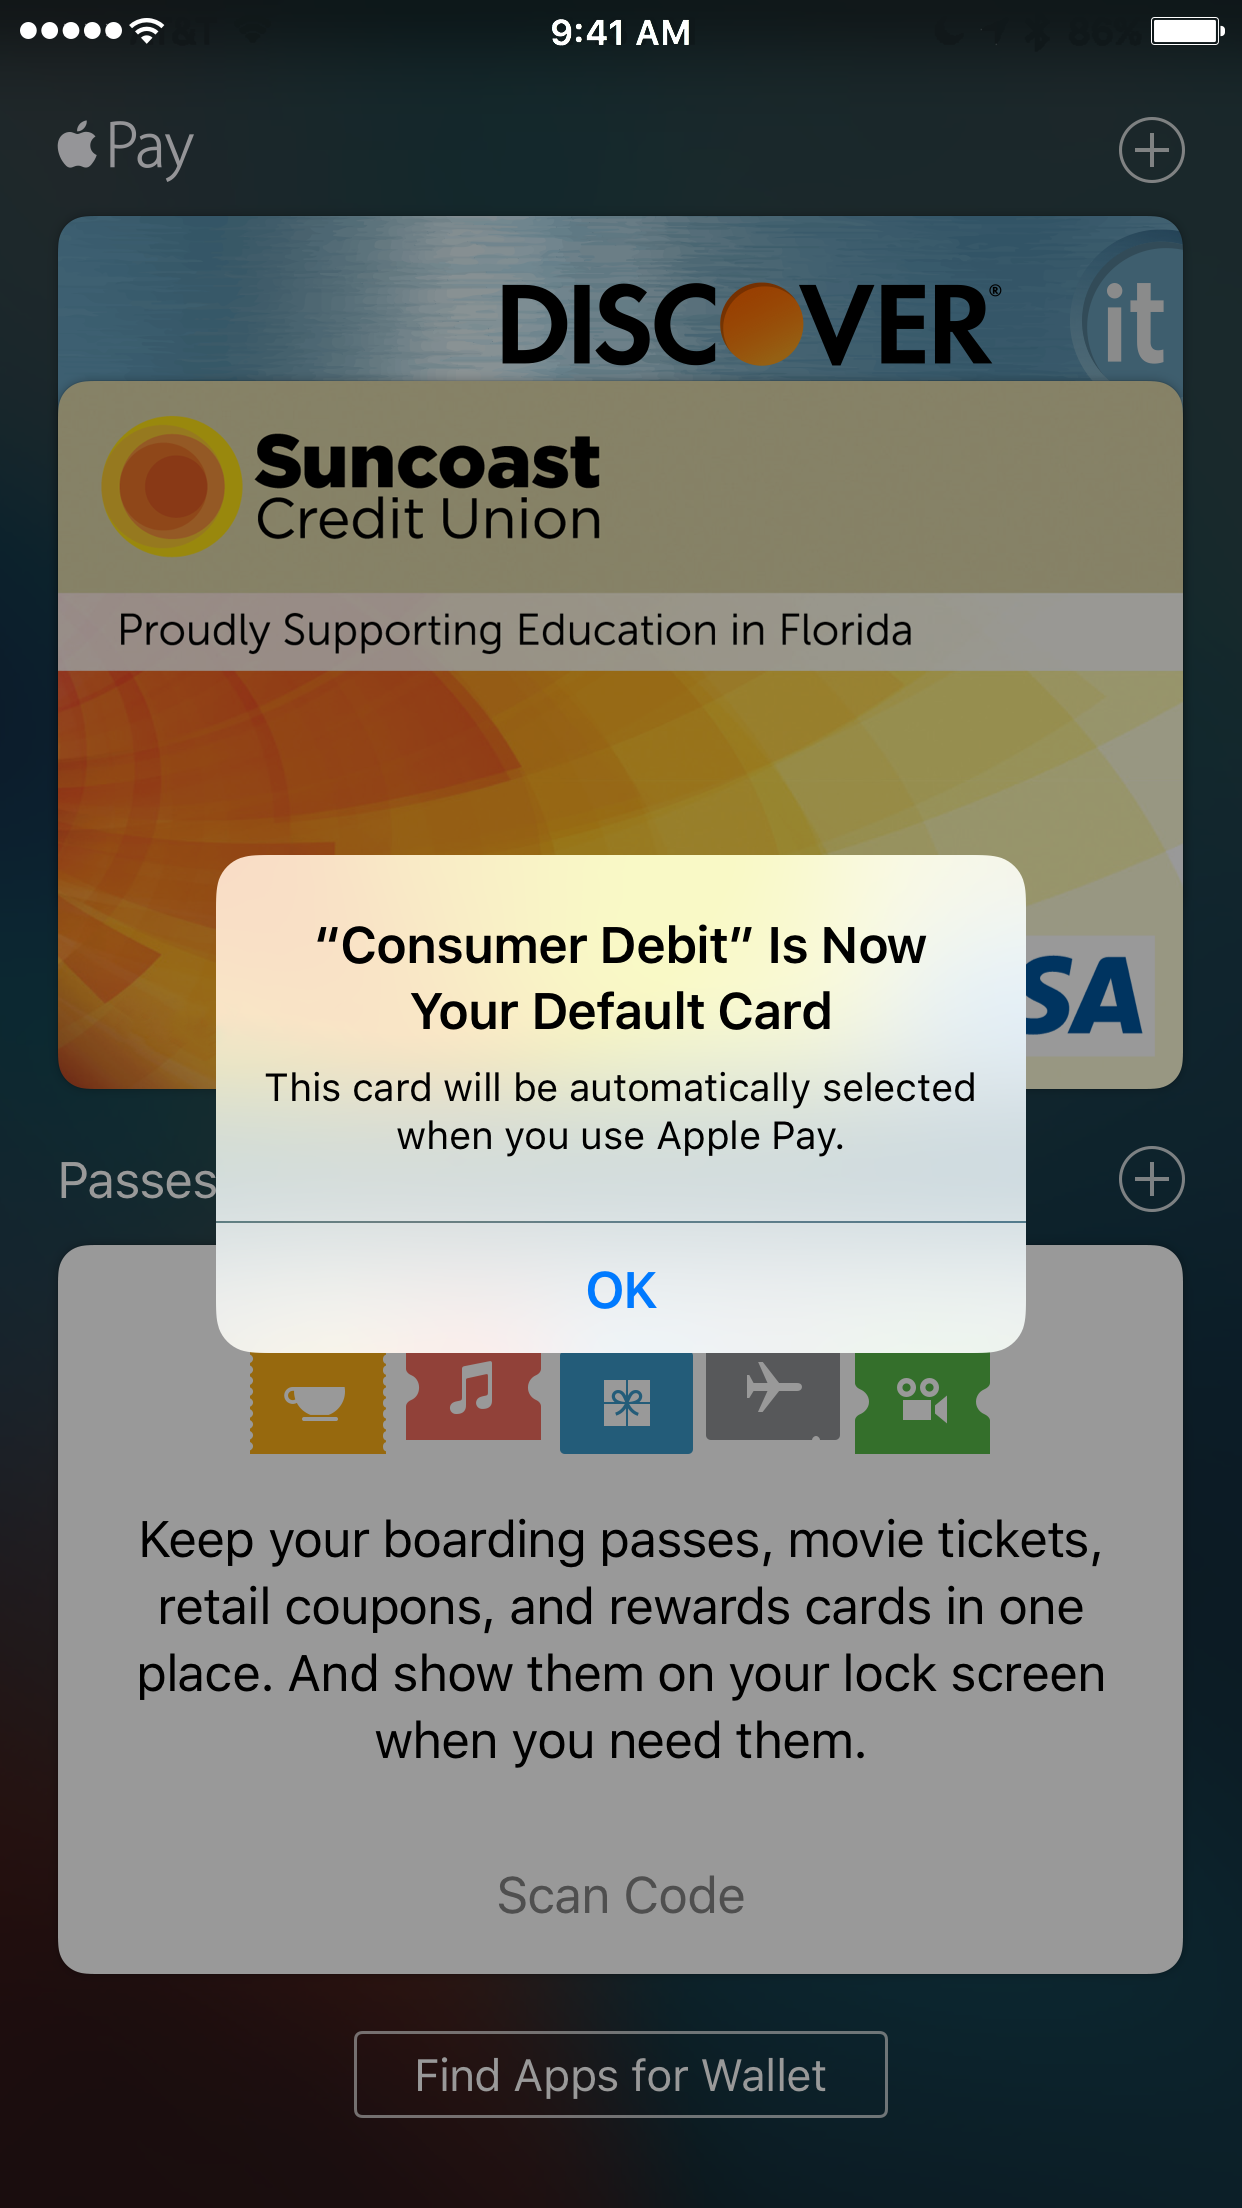 Change Default Credit Card in Apple Pay Wallet app confirmation message iOS